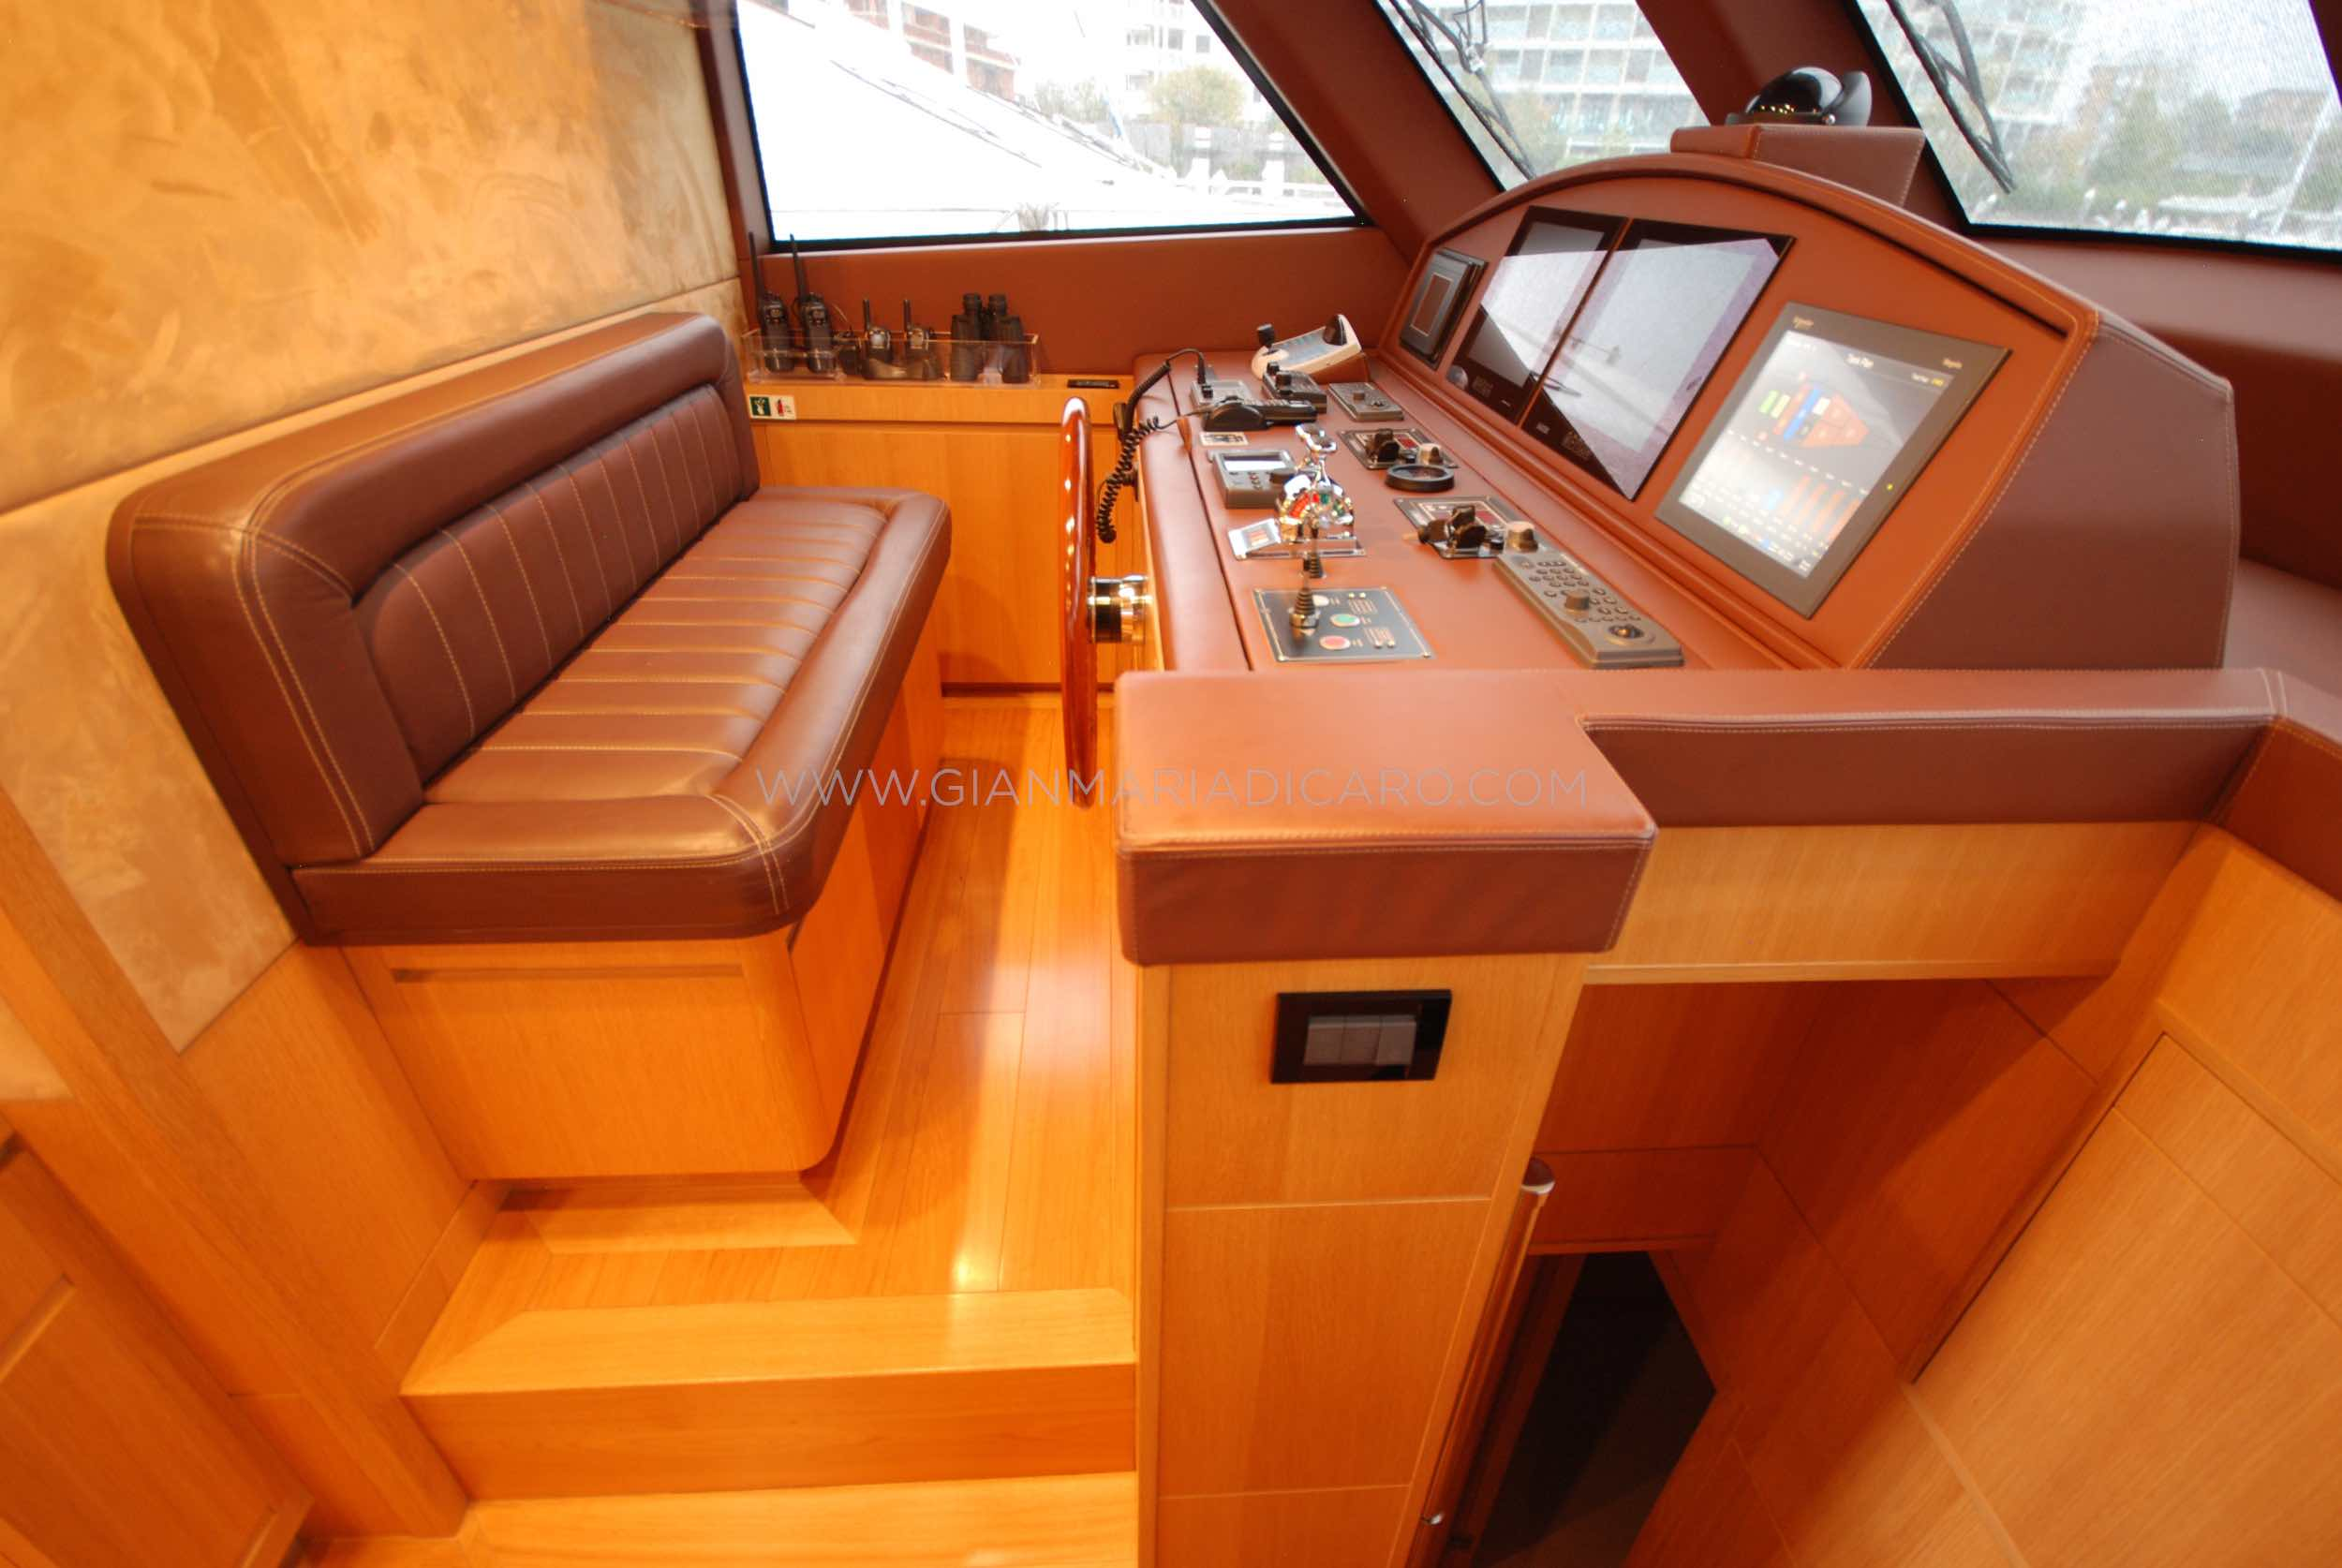 emys-yacht-22-unica-for-sale-152.jpg